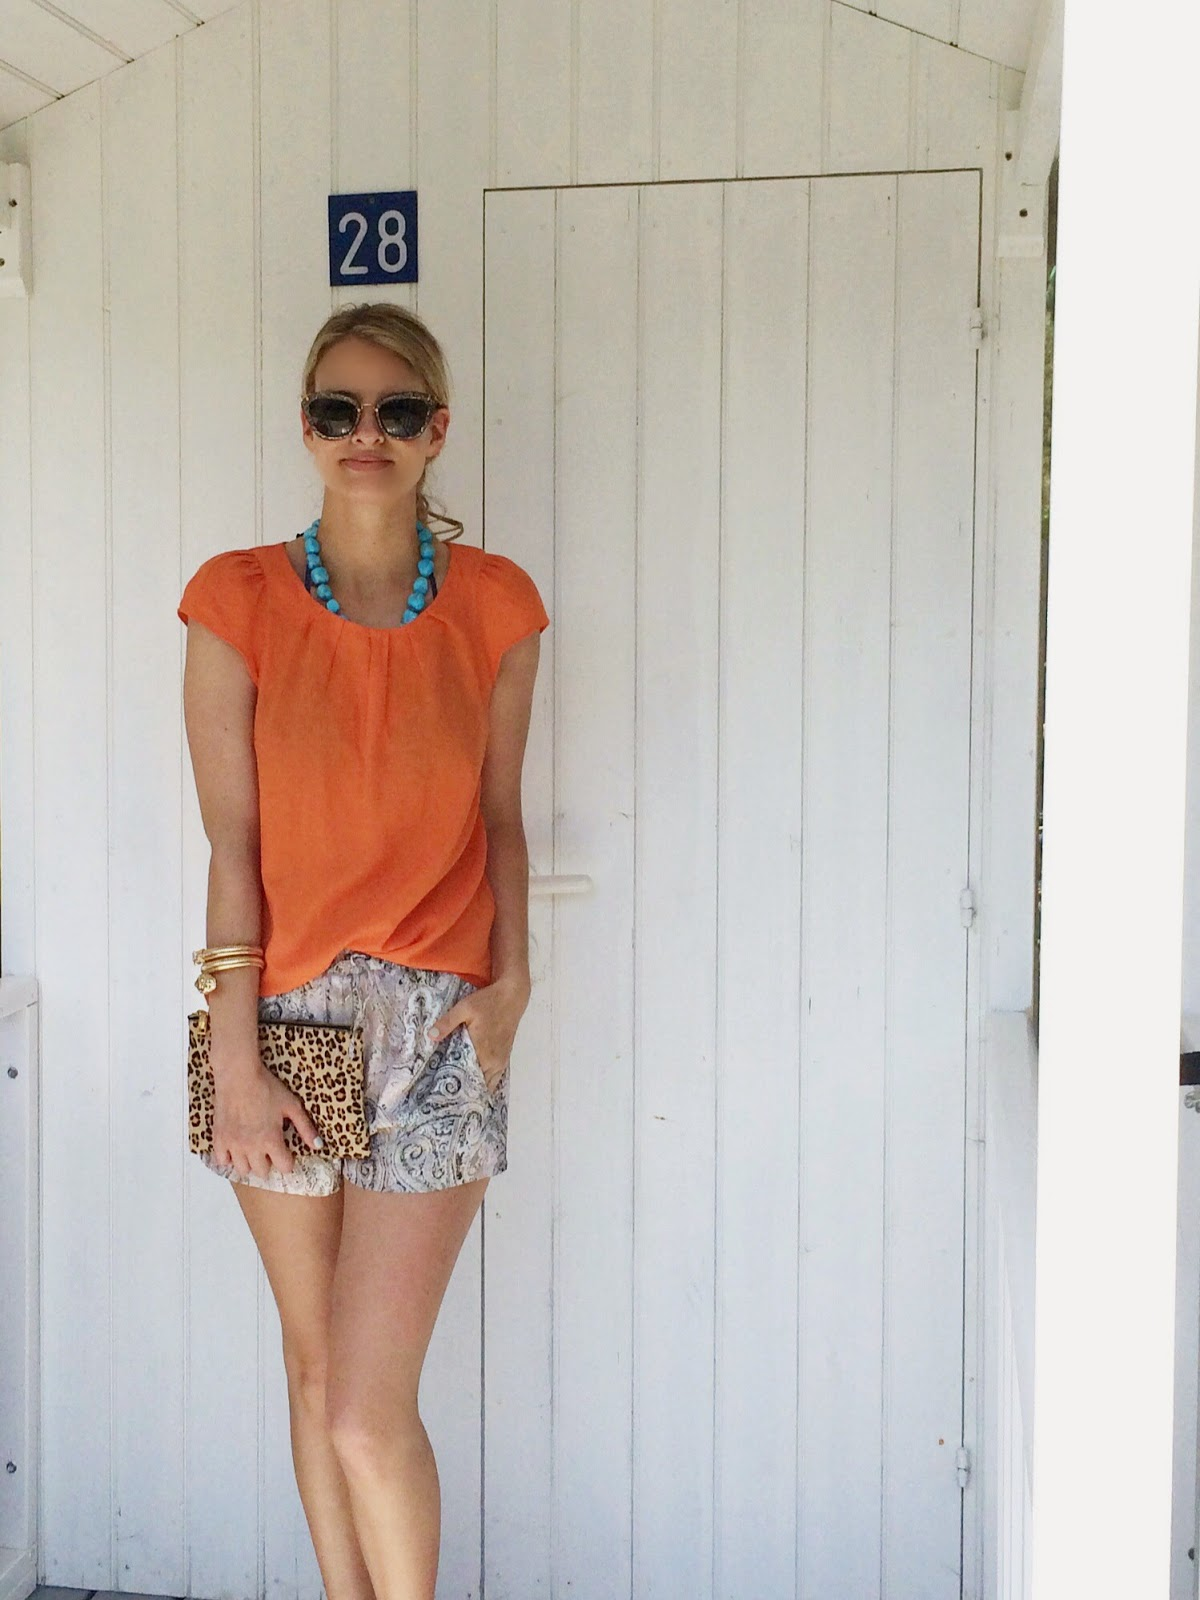 outfit of the day, printed shorts, organge top, print mix, leopard print clutch, zara outfit, zara lookbook, lookbook, street style, summer outfit, j crew, j crew clutch, anna dello russo jewellery, hm, miu miu sunglasses, cat eye sunglasses